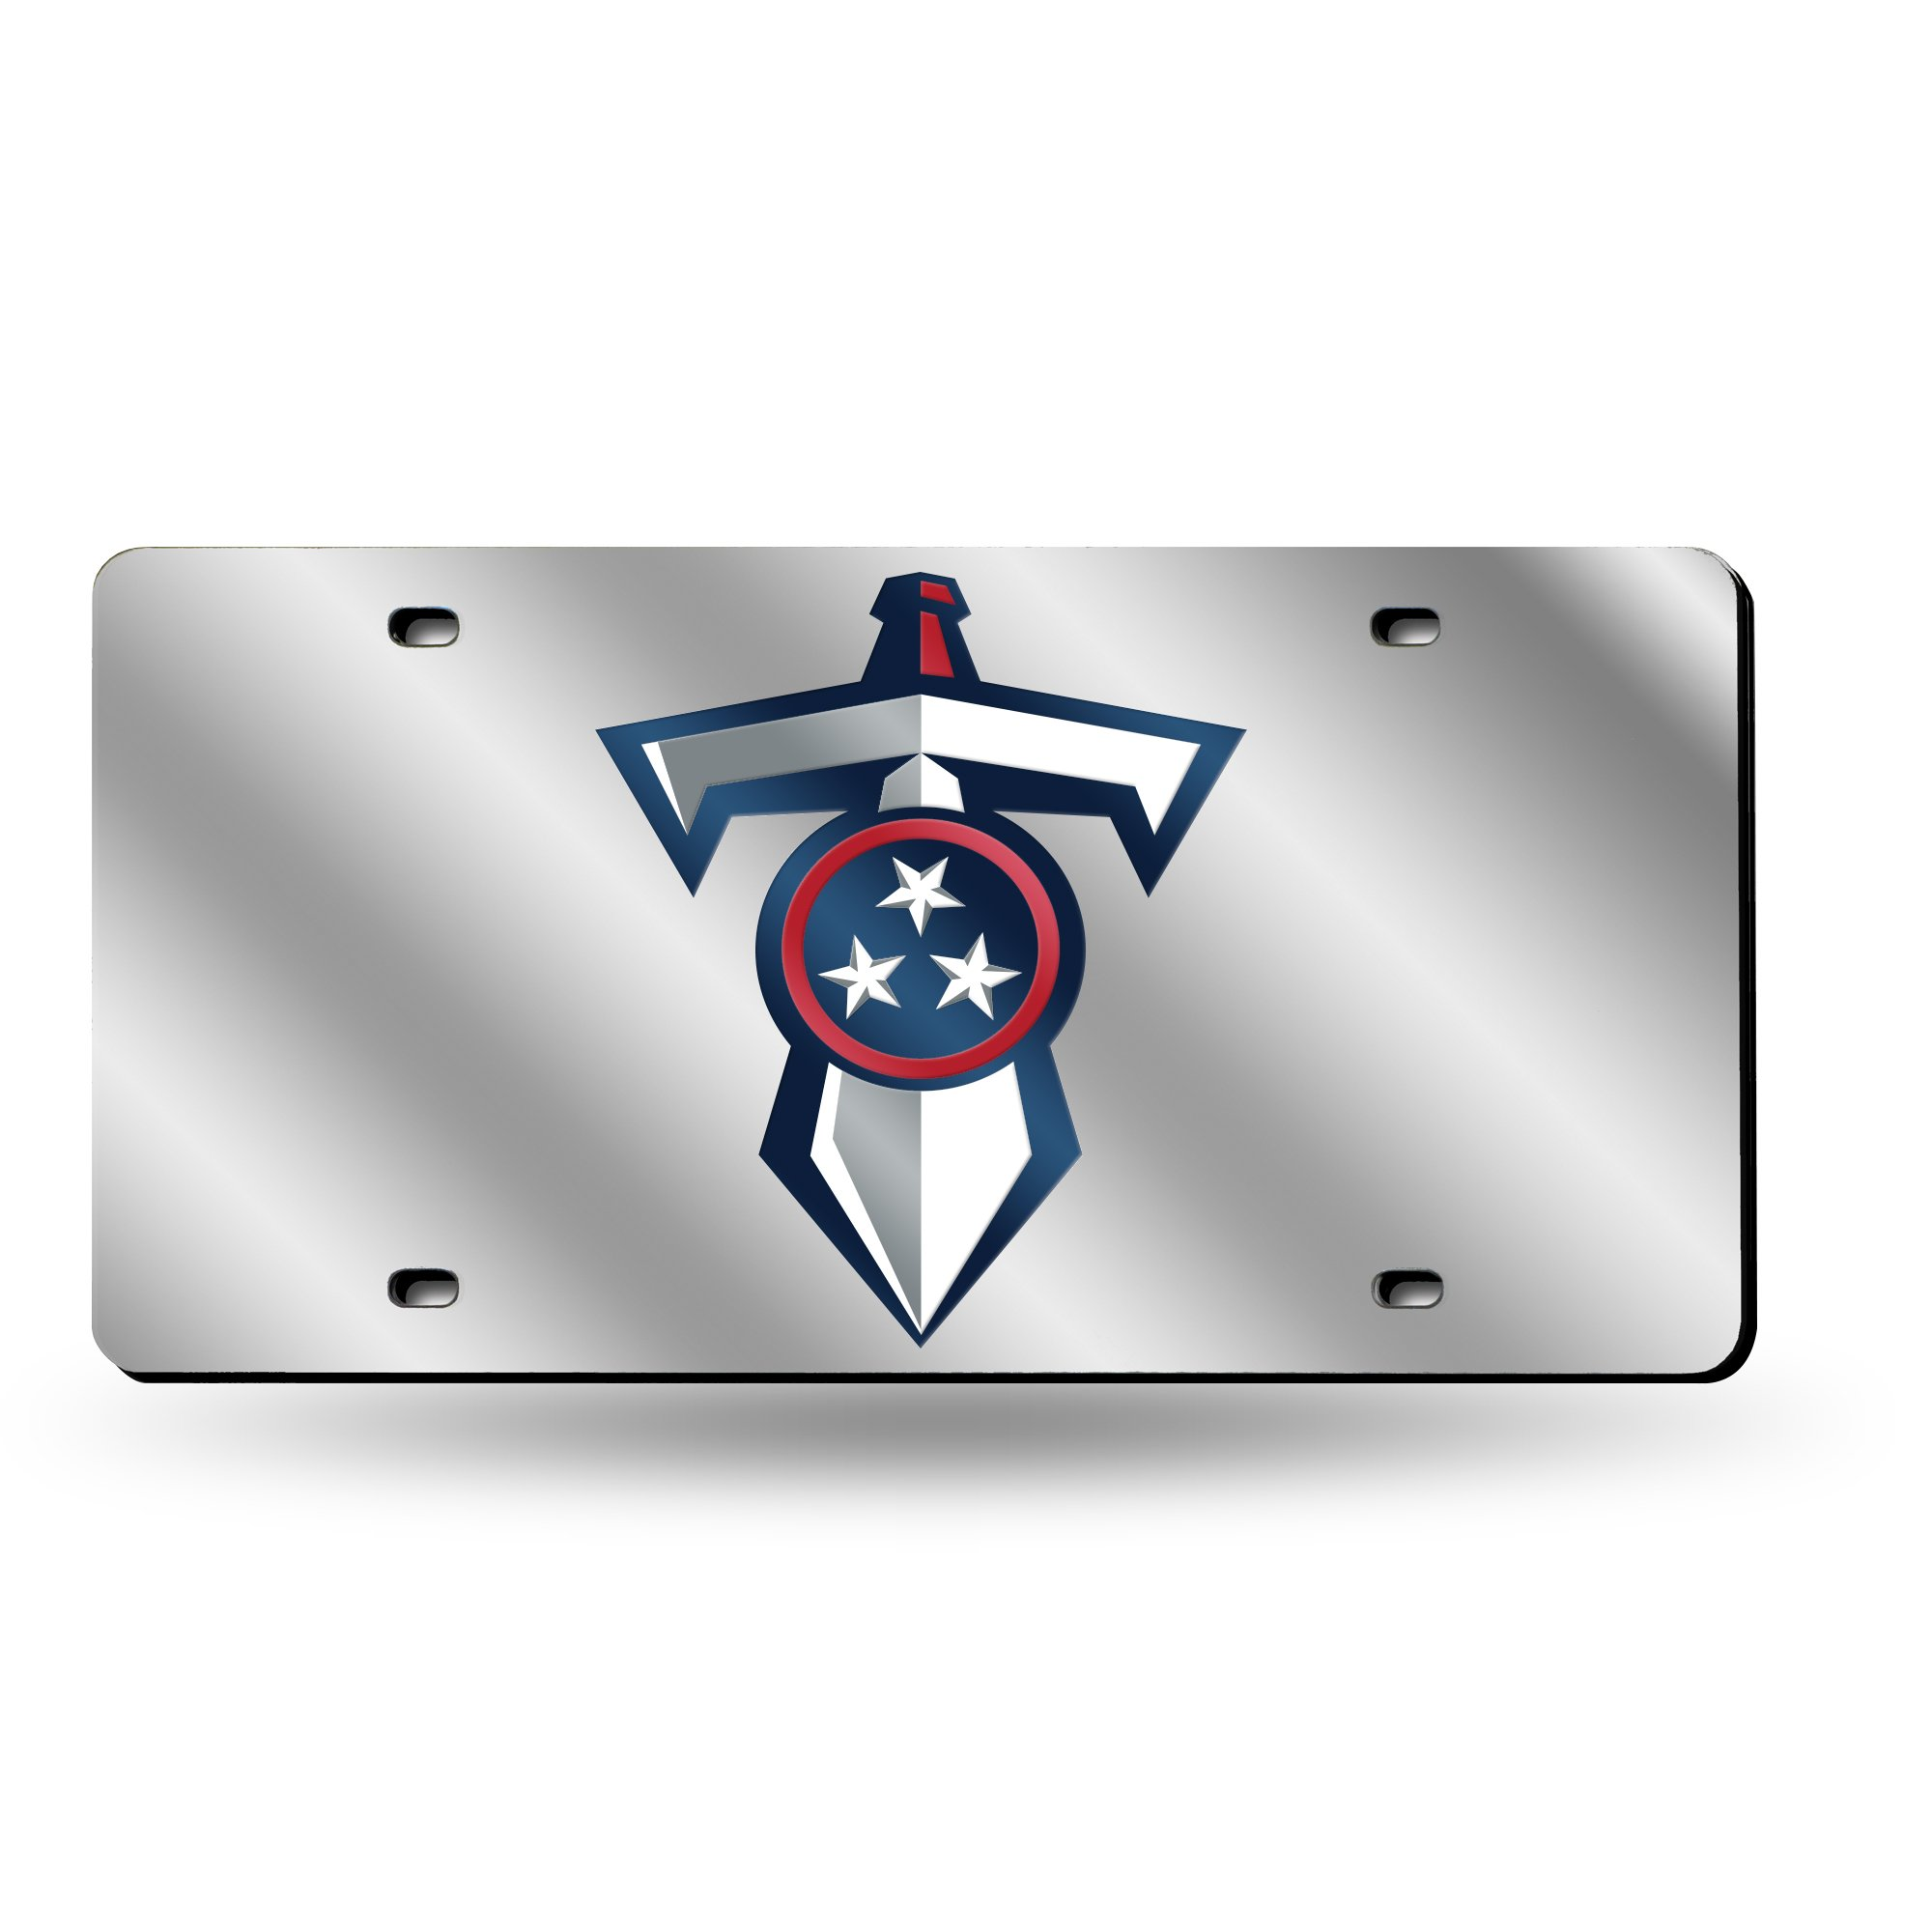 Rico Industries NFL Tennessee Titans Shield & Sword Laser Inlaid Metal License Plate Tag, Silver